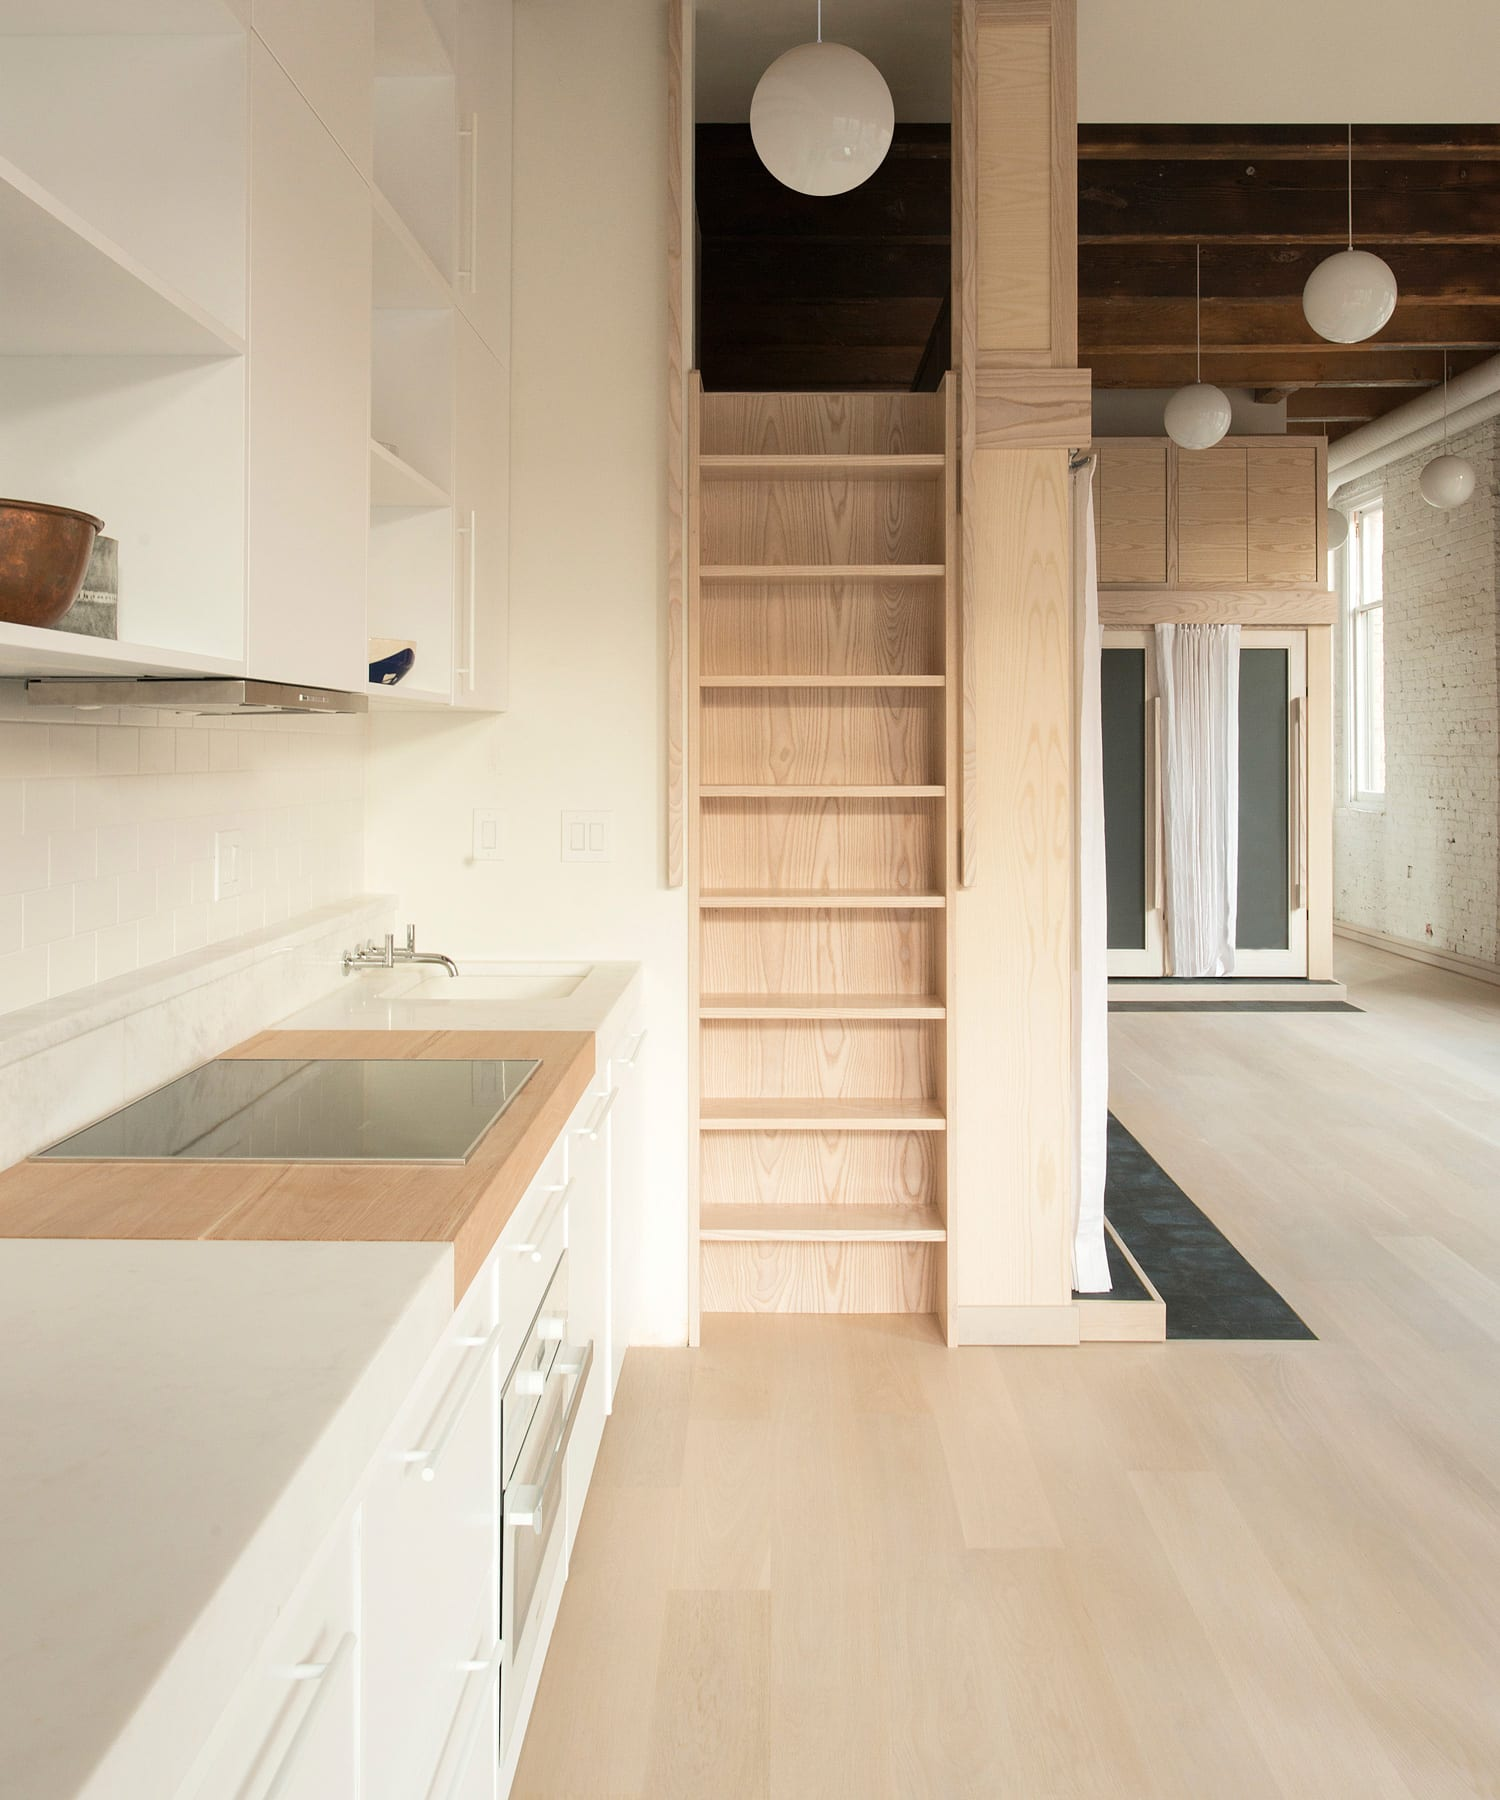 Pioneer Square Loft In Seattle, USA By Le Whit